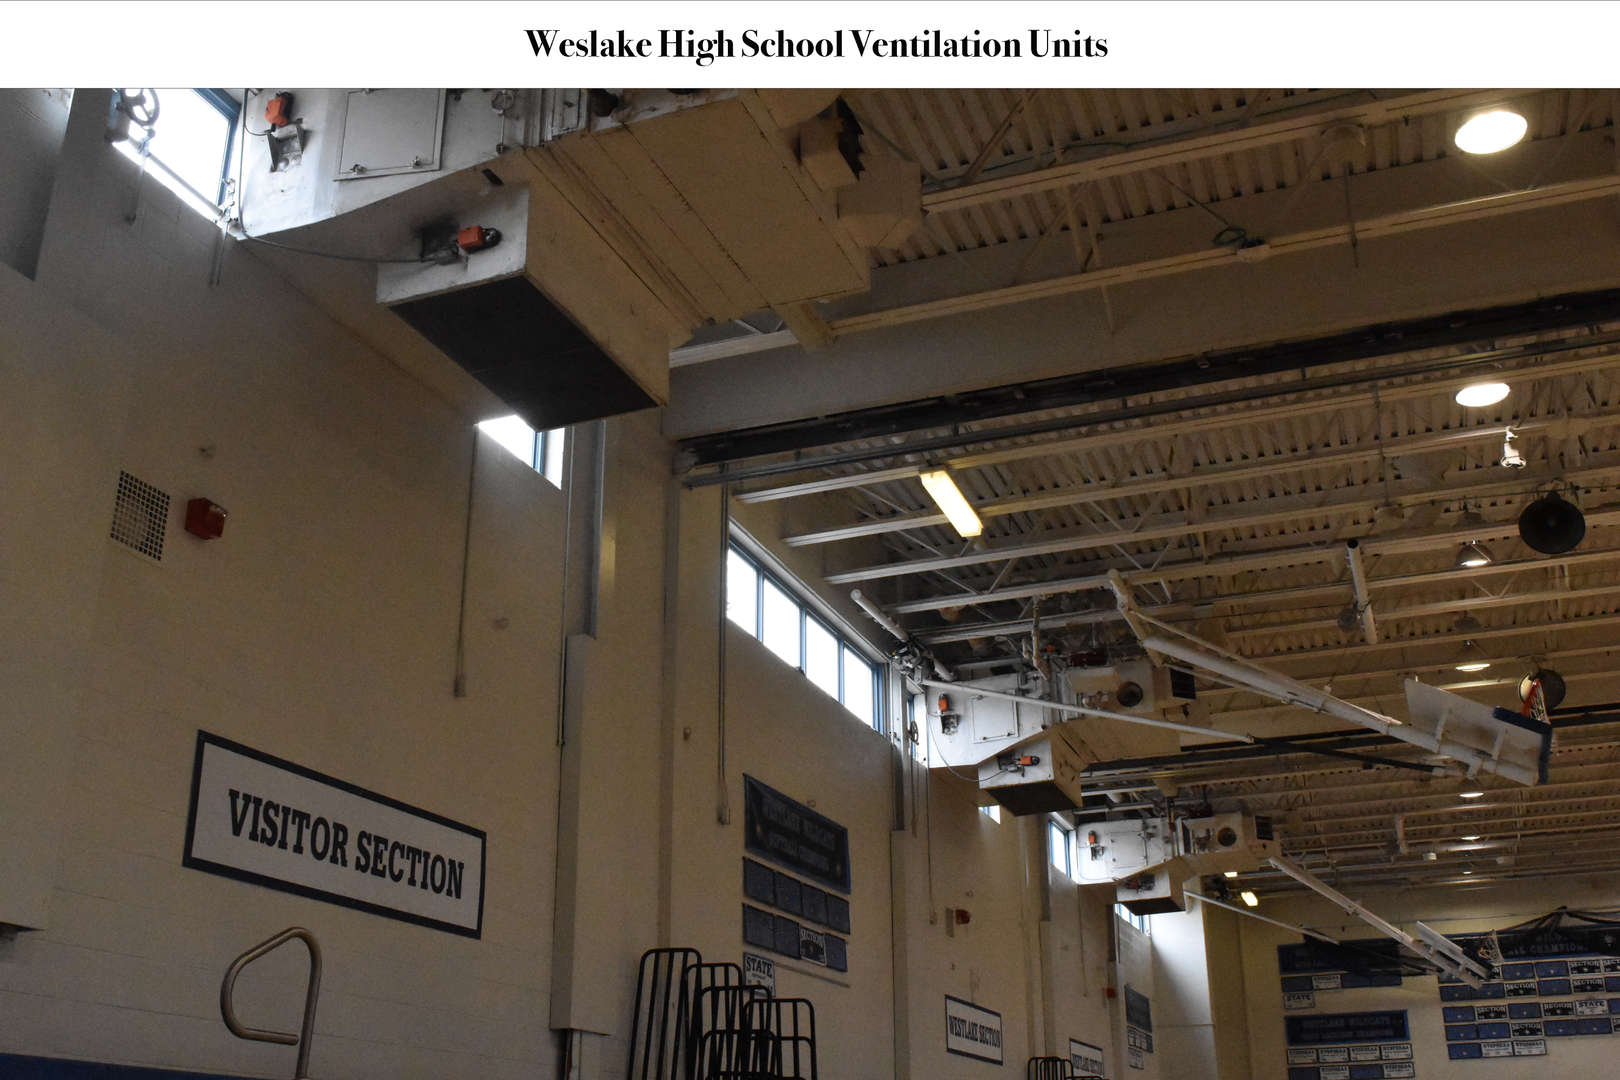 multiple ventilation units in on ceiling of gymnasium